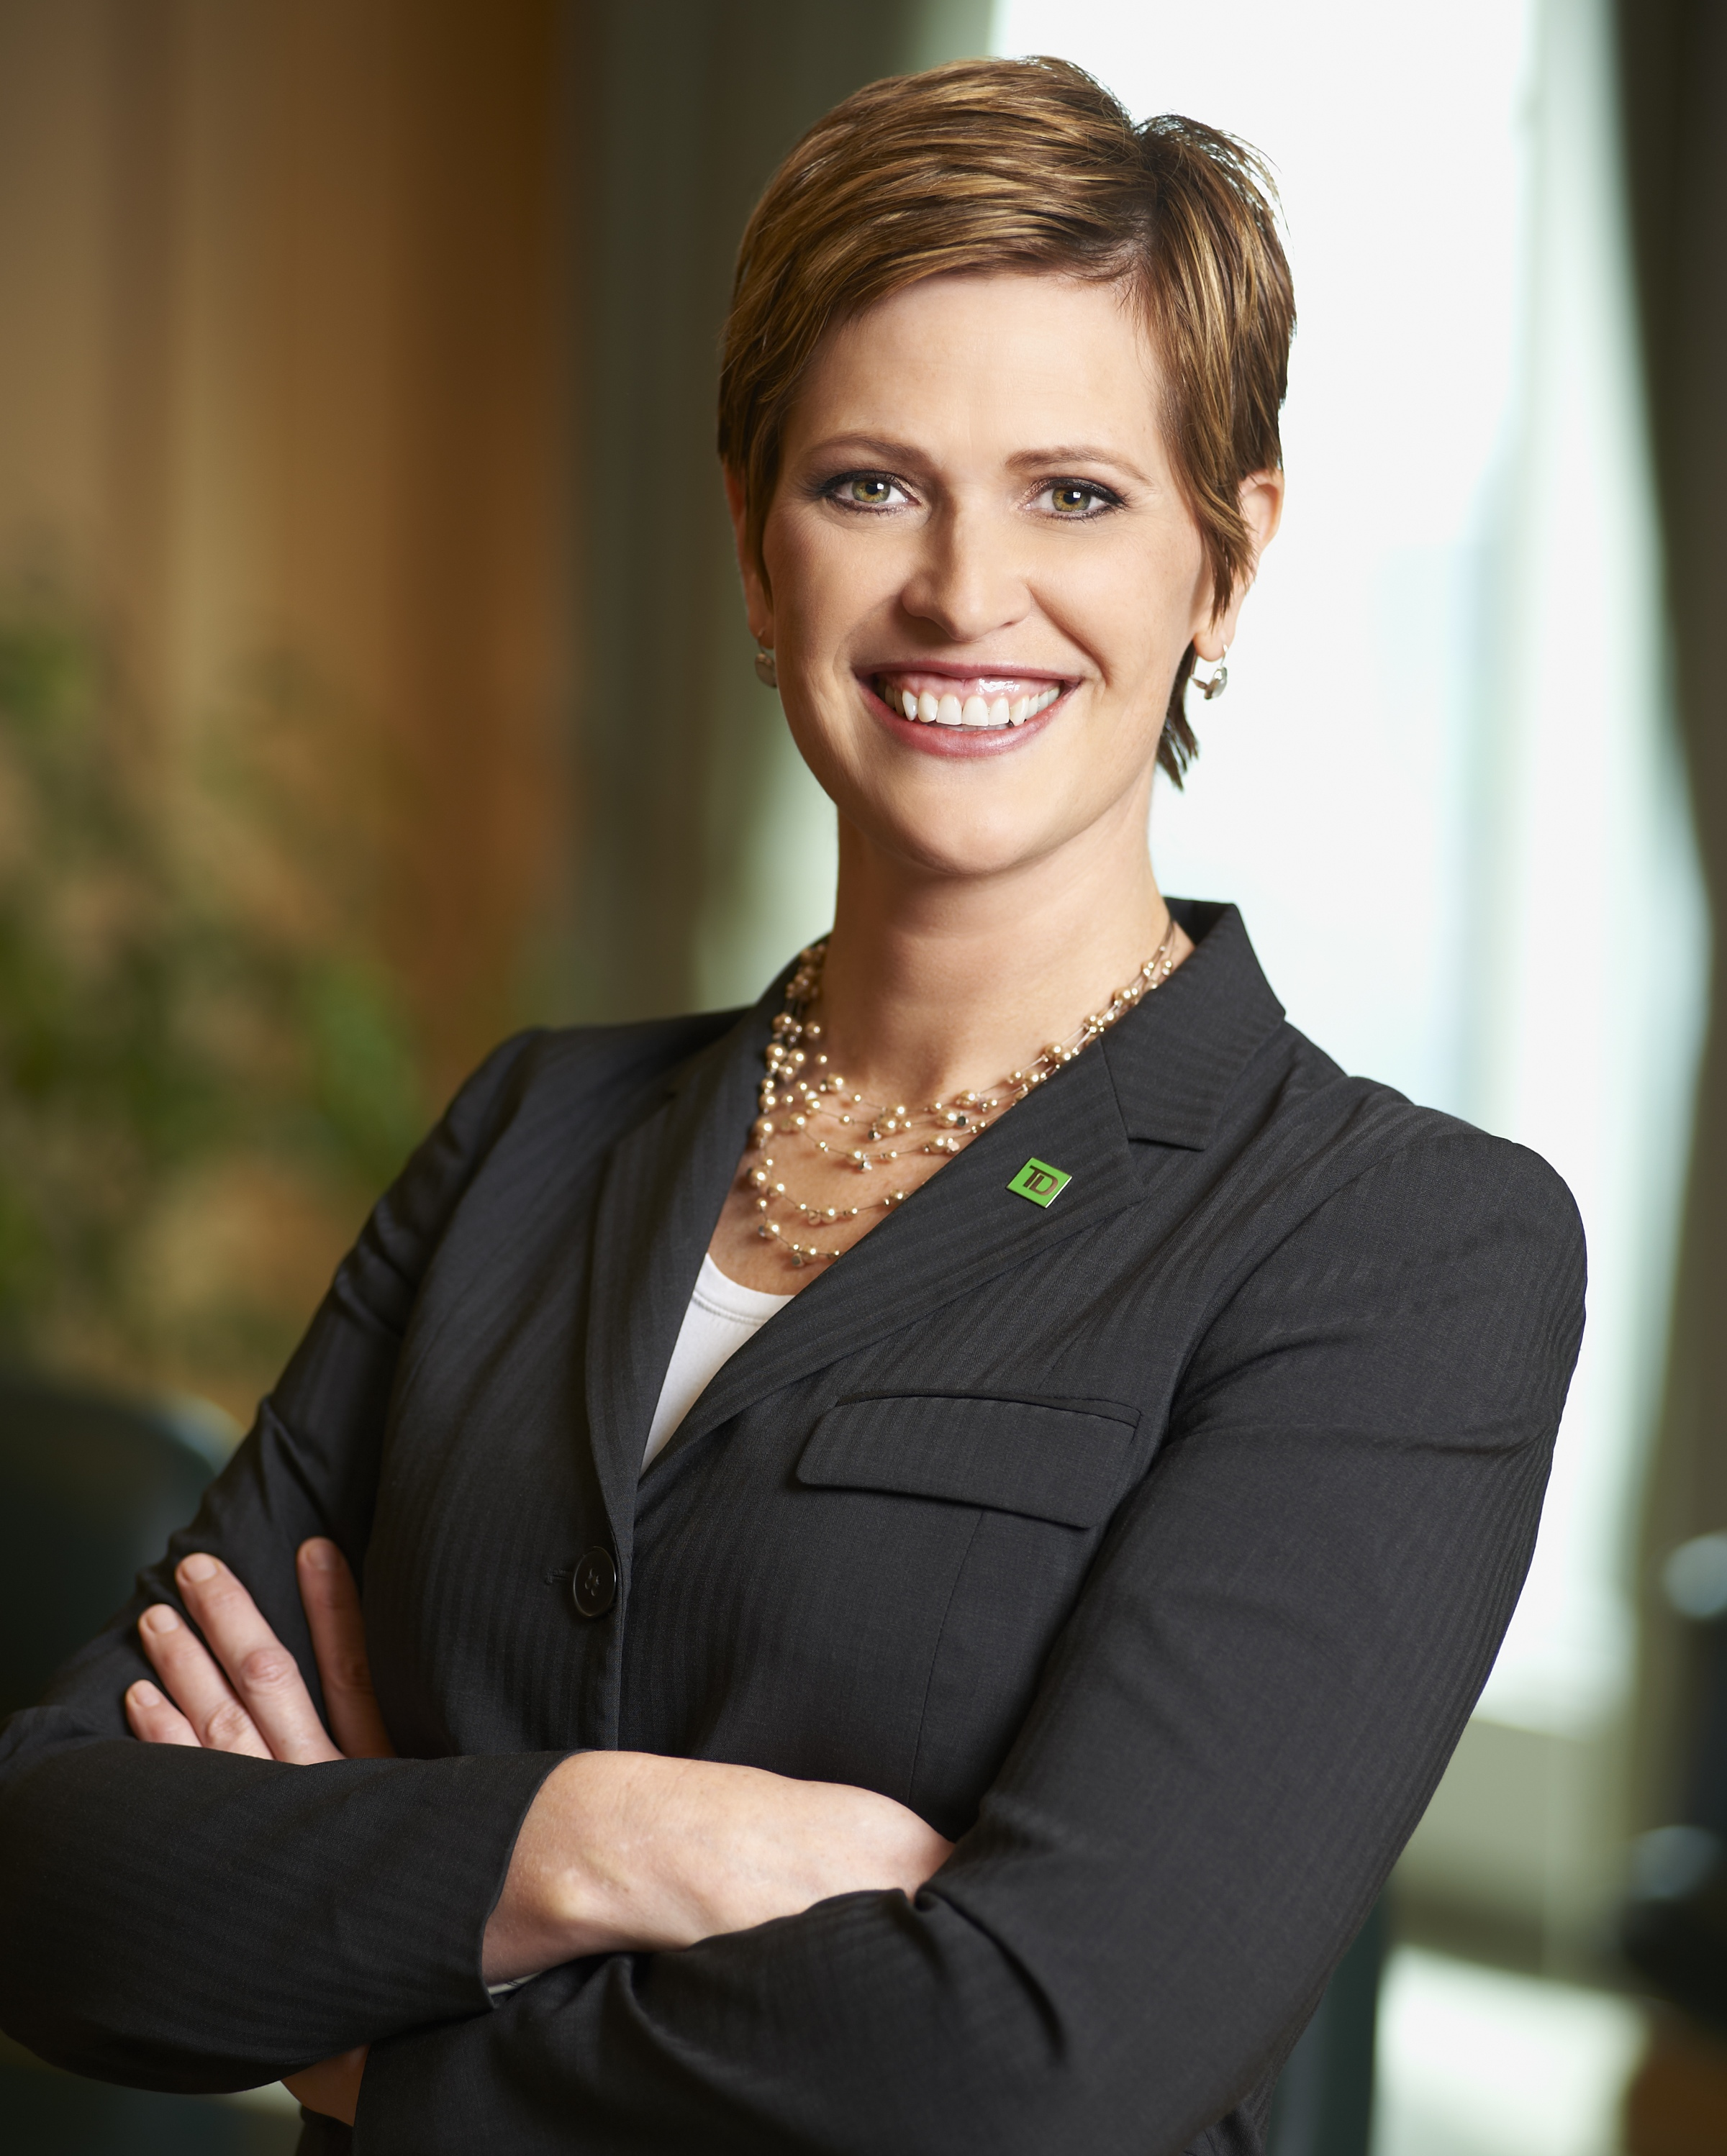 Kim Parlee, Vice President, TD Wealth Management